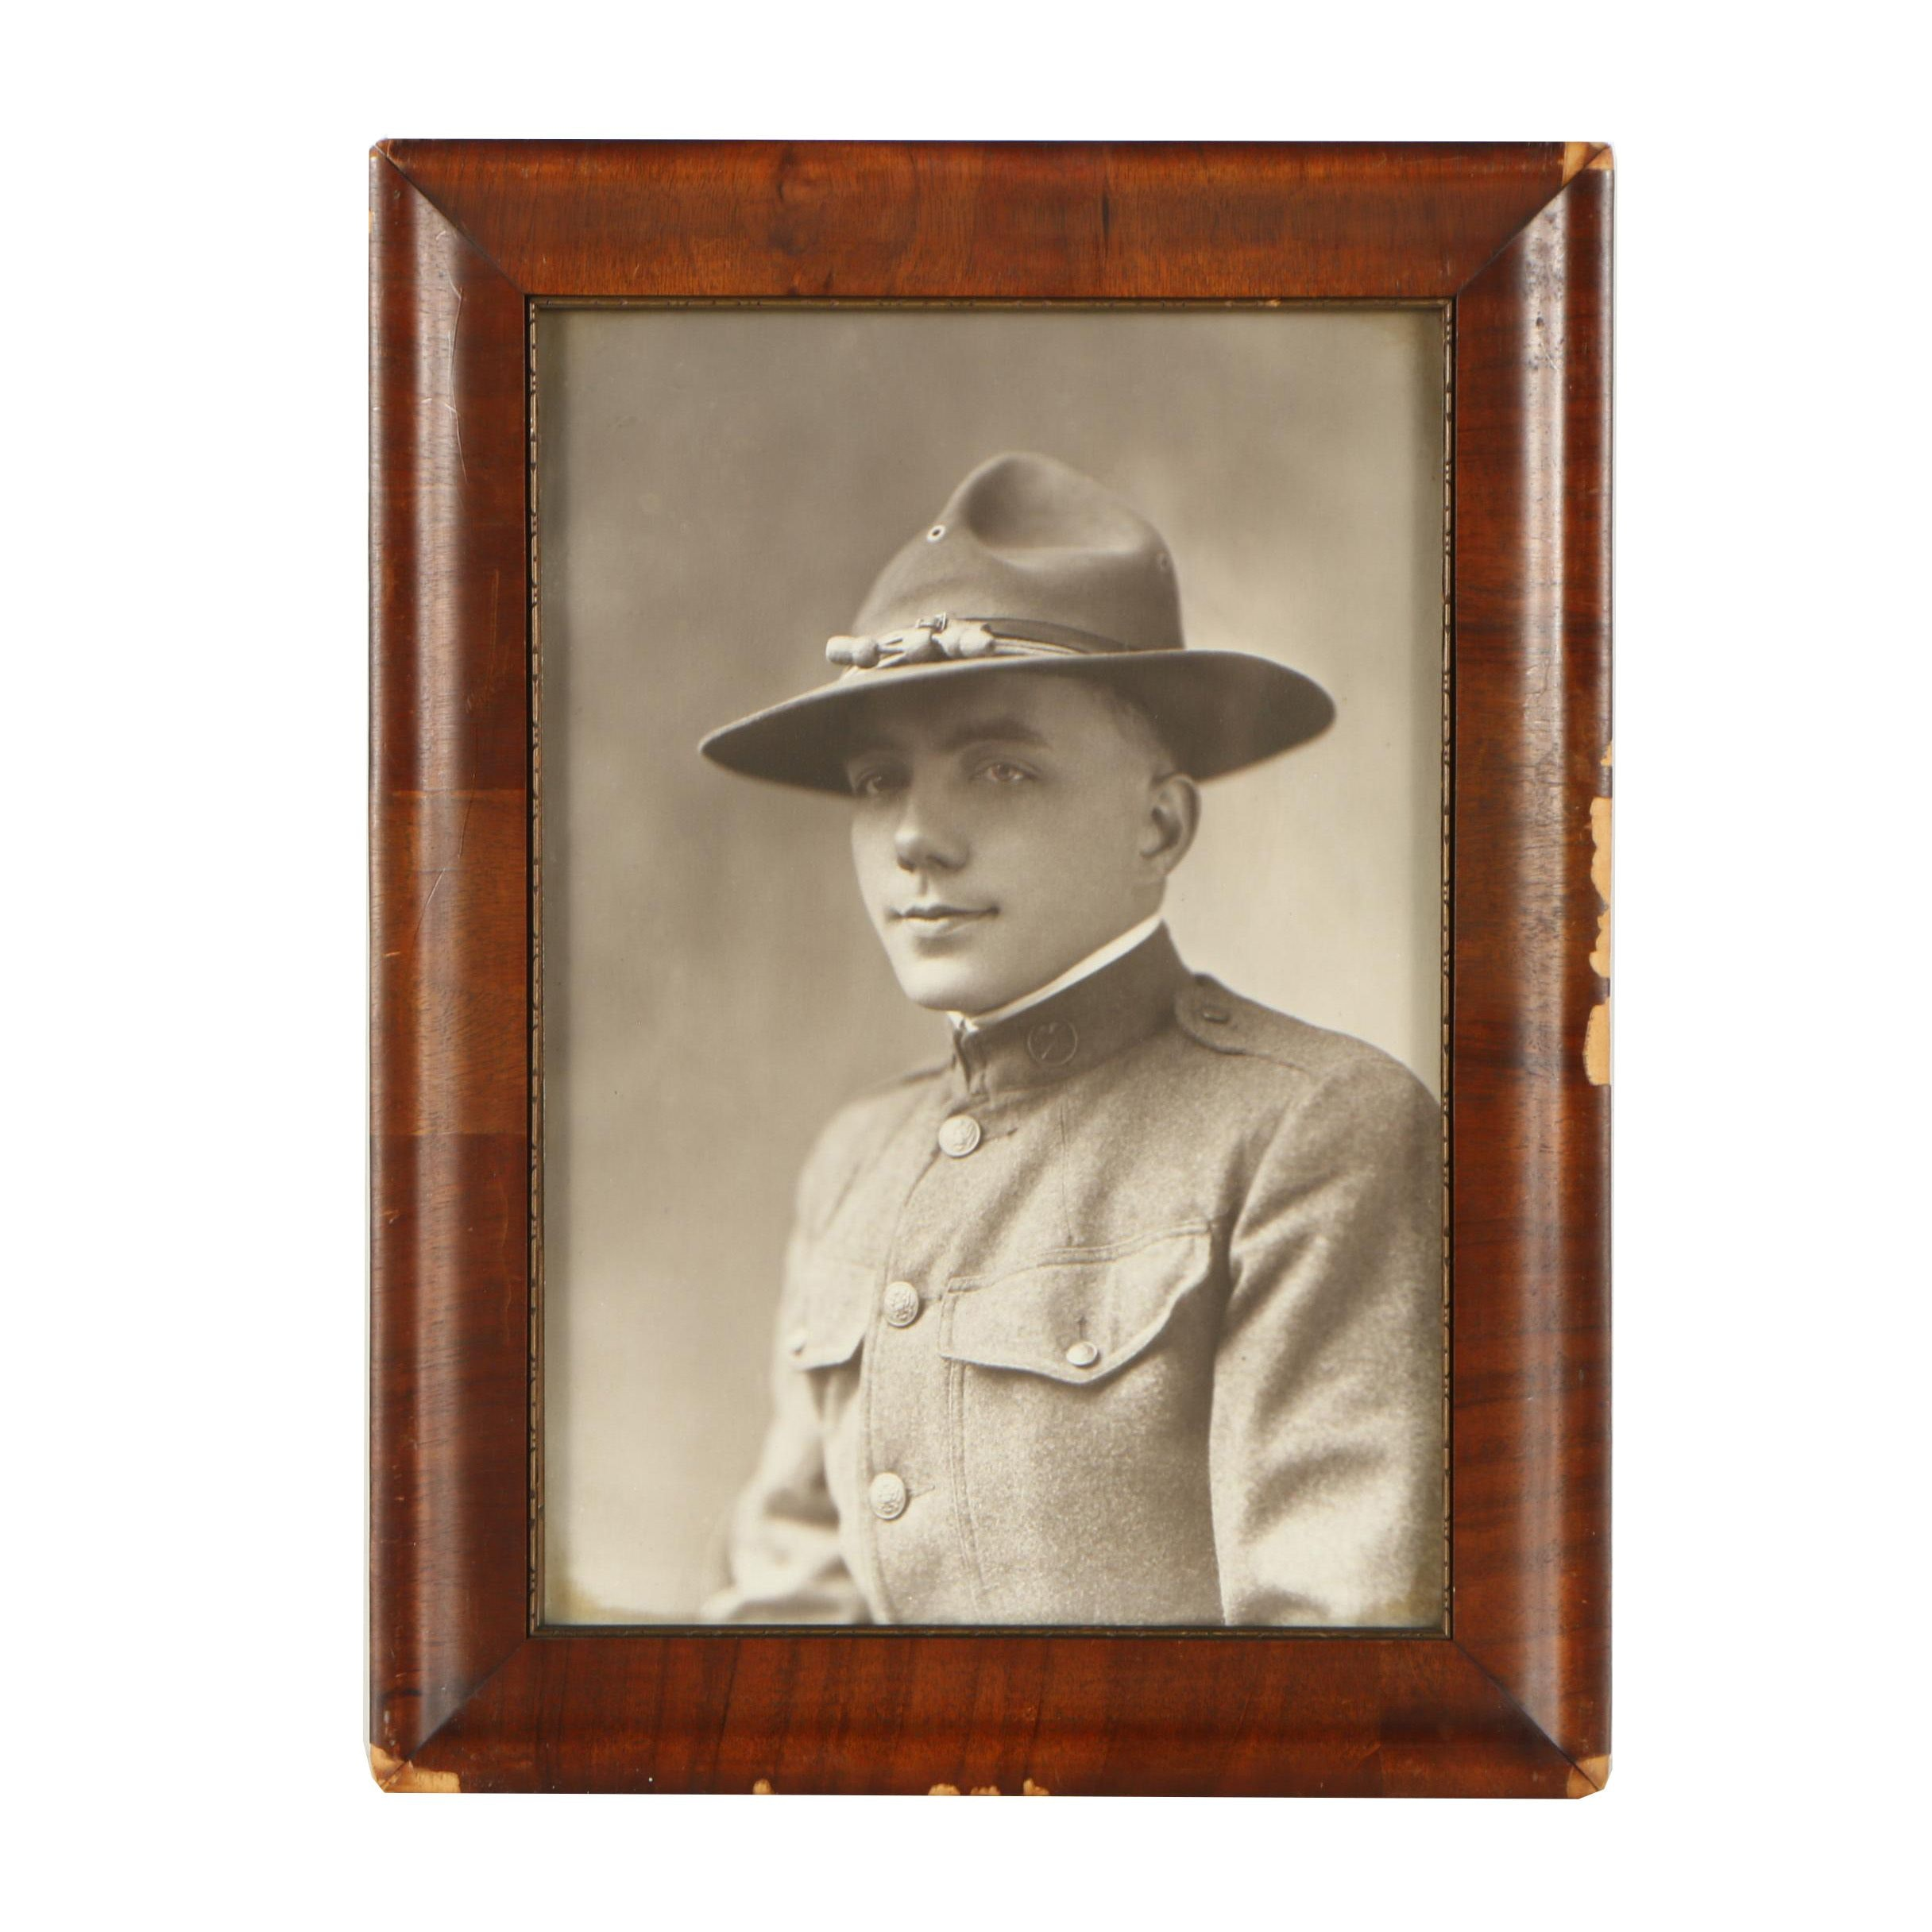 WWI Era Photograph of U.S. Soldier